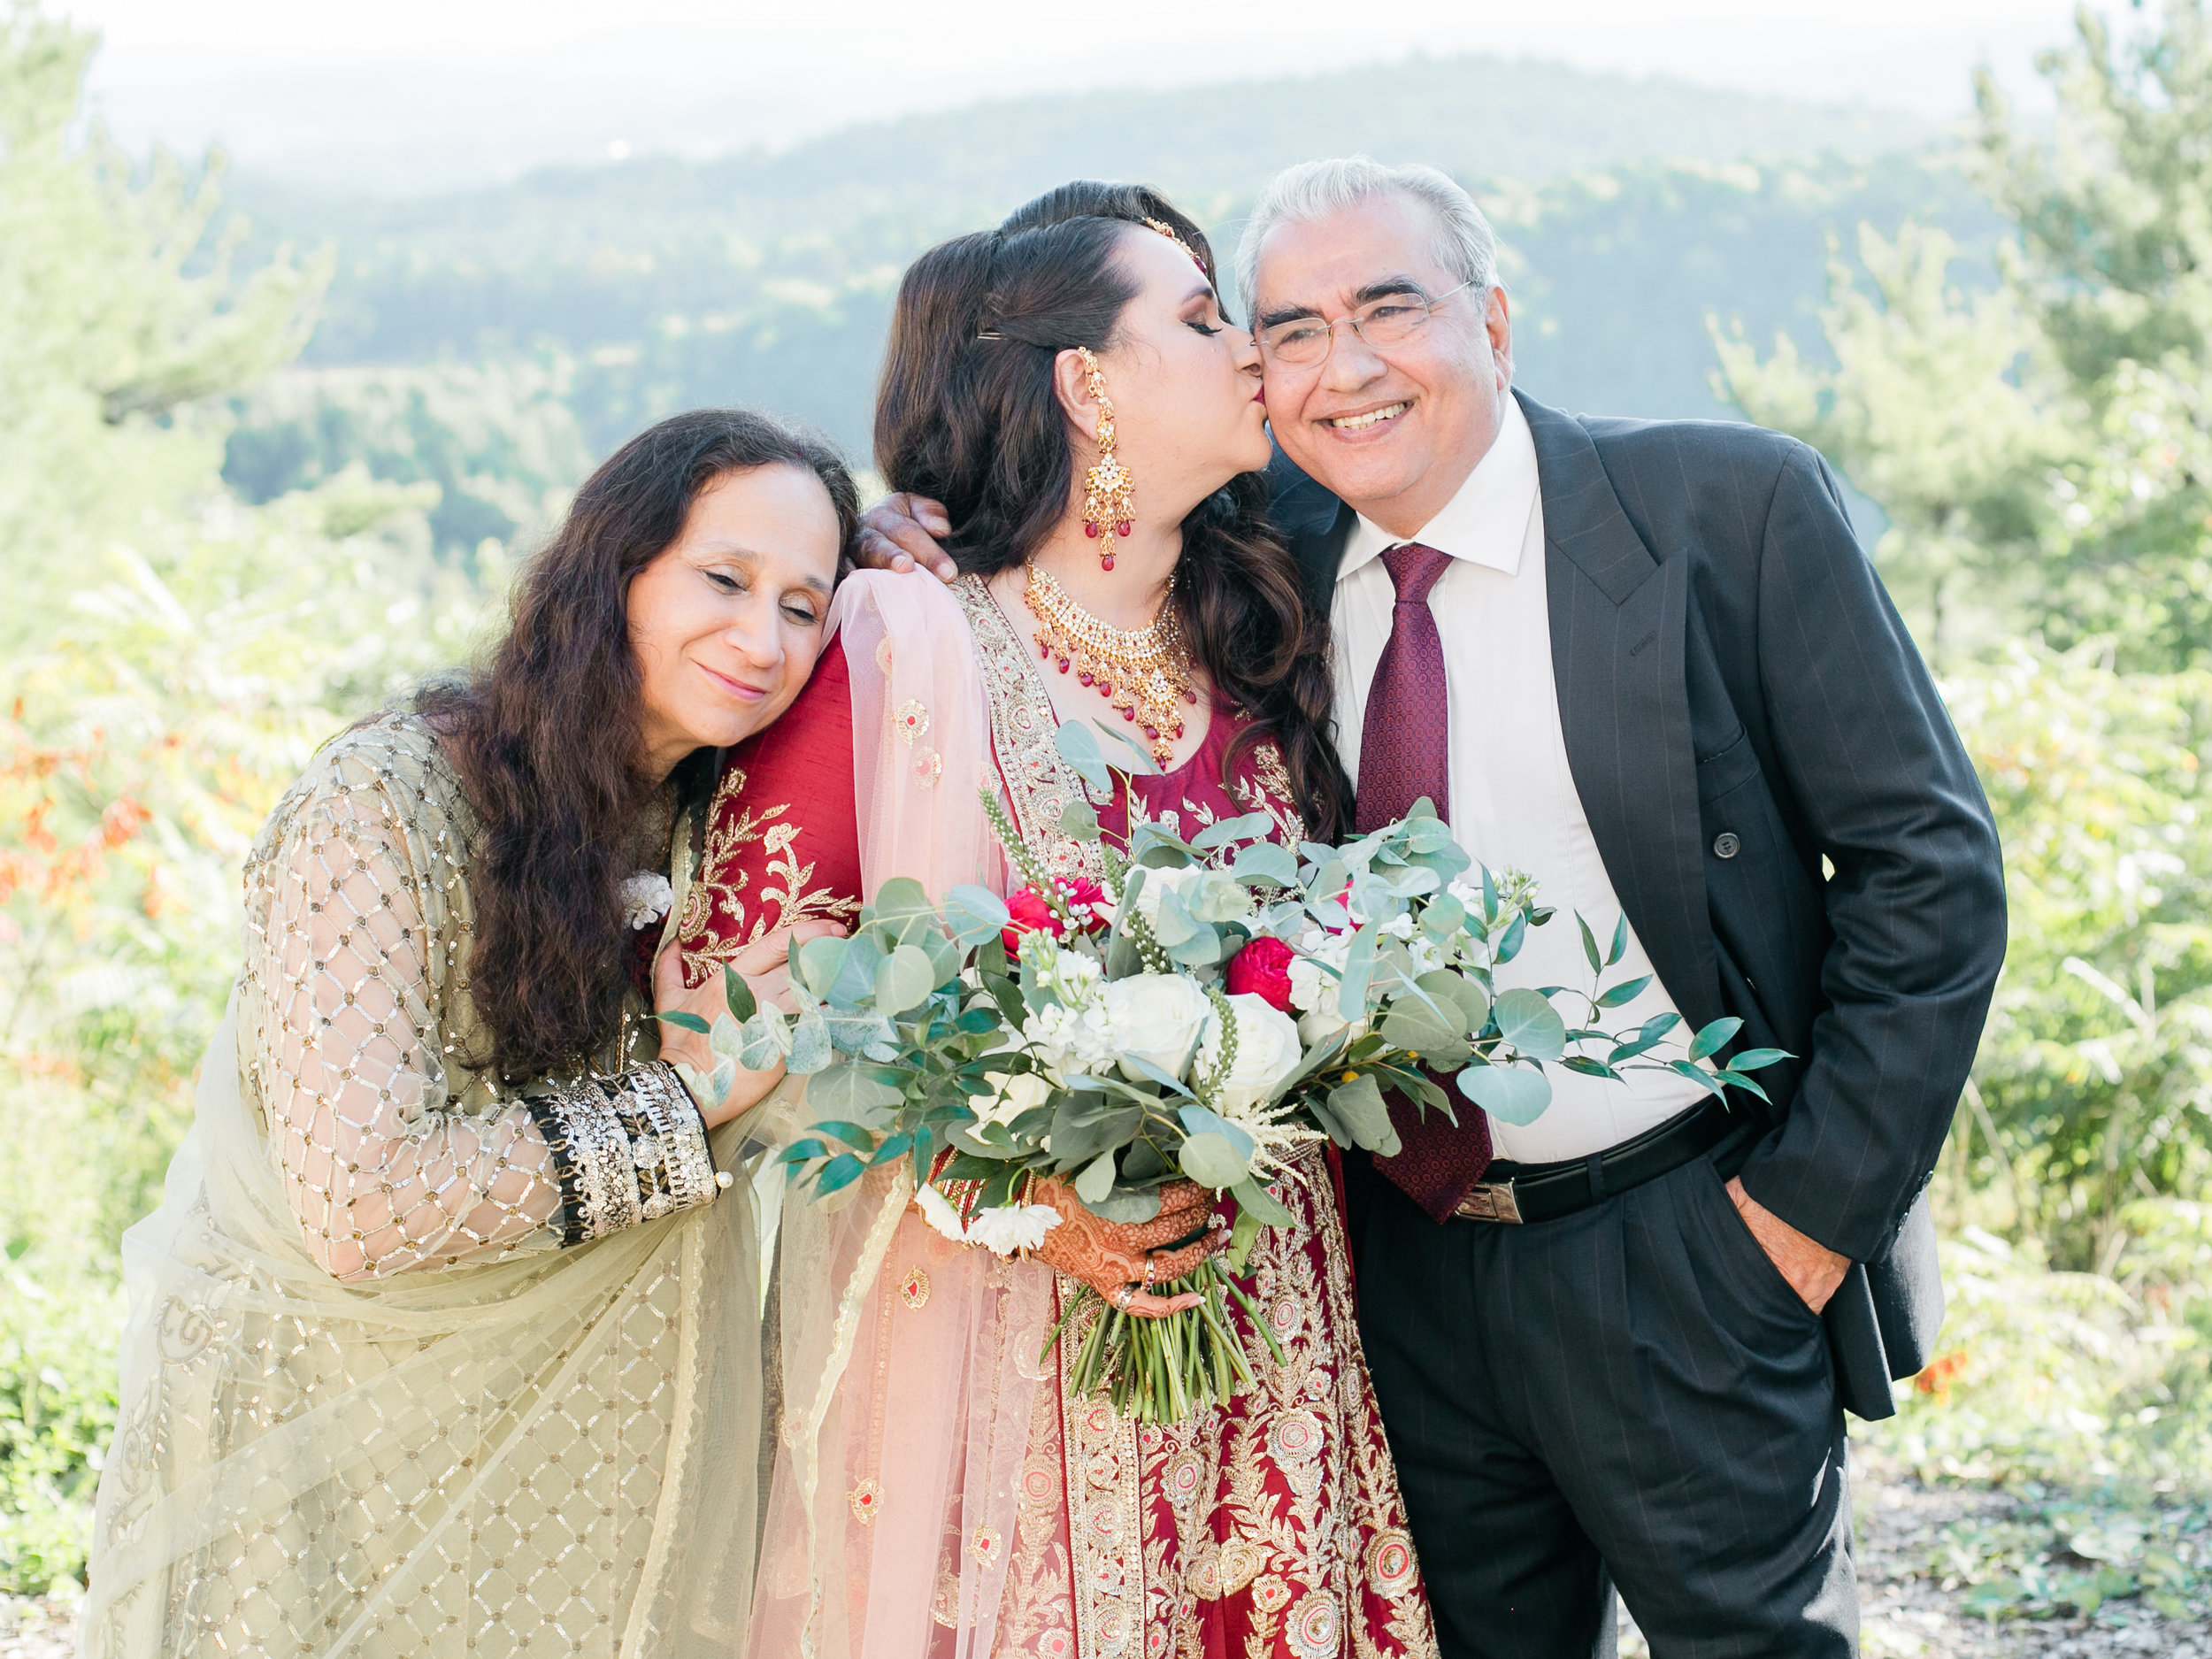 LeBelvedere_MountainTopWedding_StephanieMasonPhotography-214.jpg